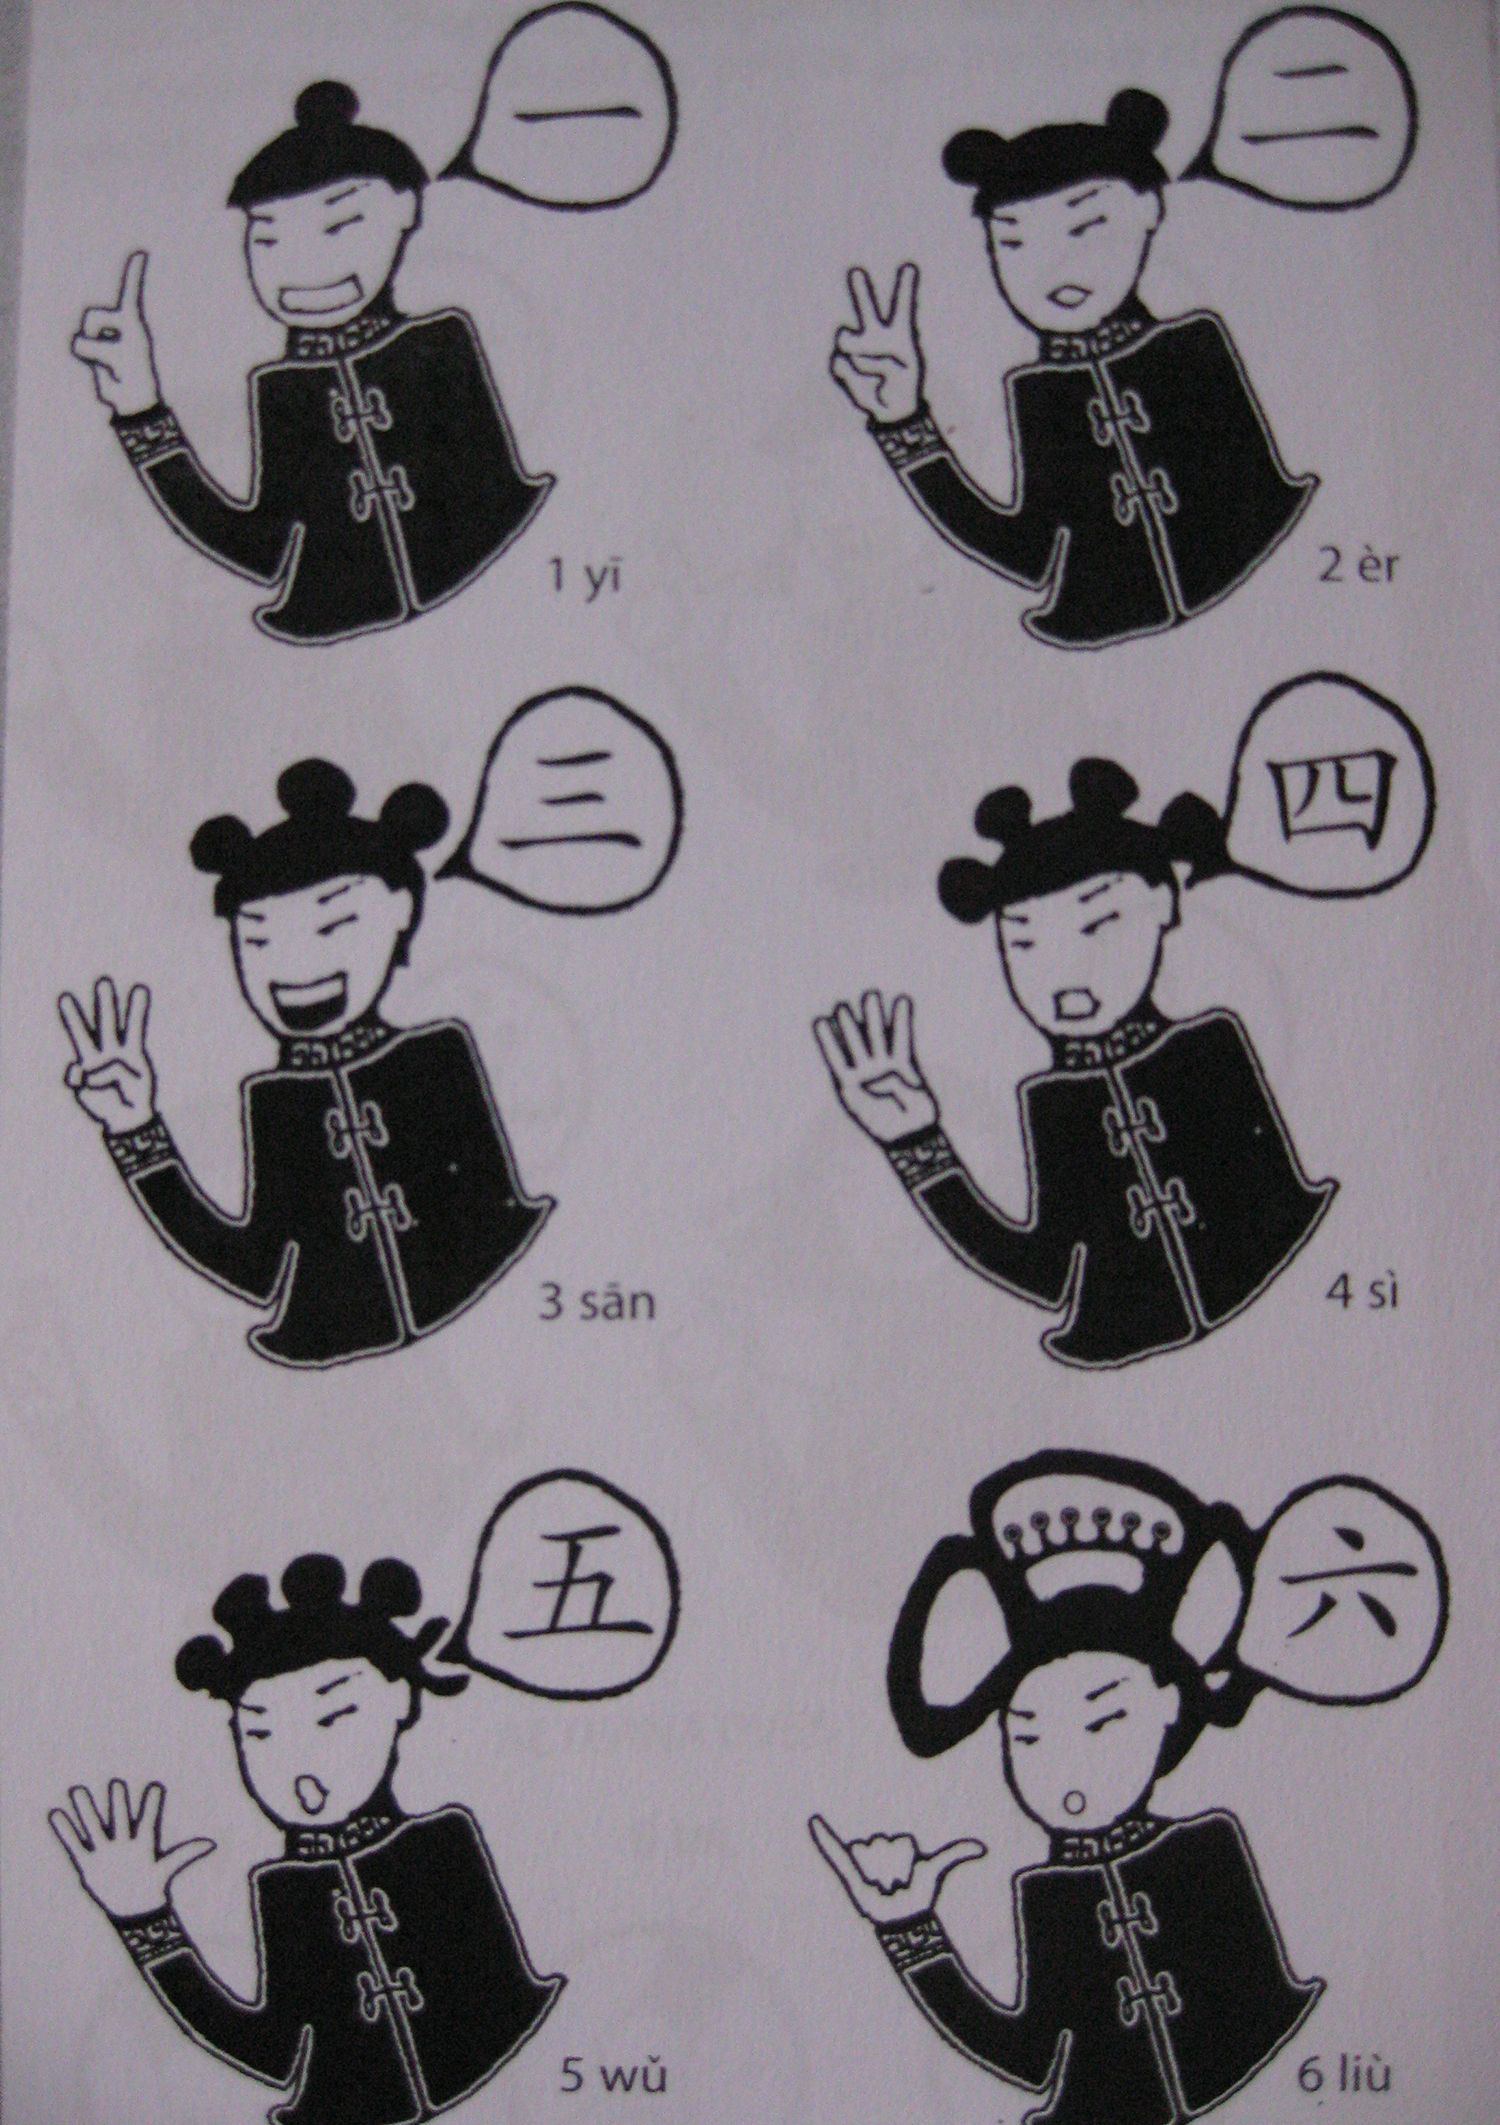 Hand Gestures For Chinese Numbers 1 10 In